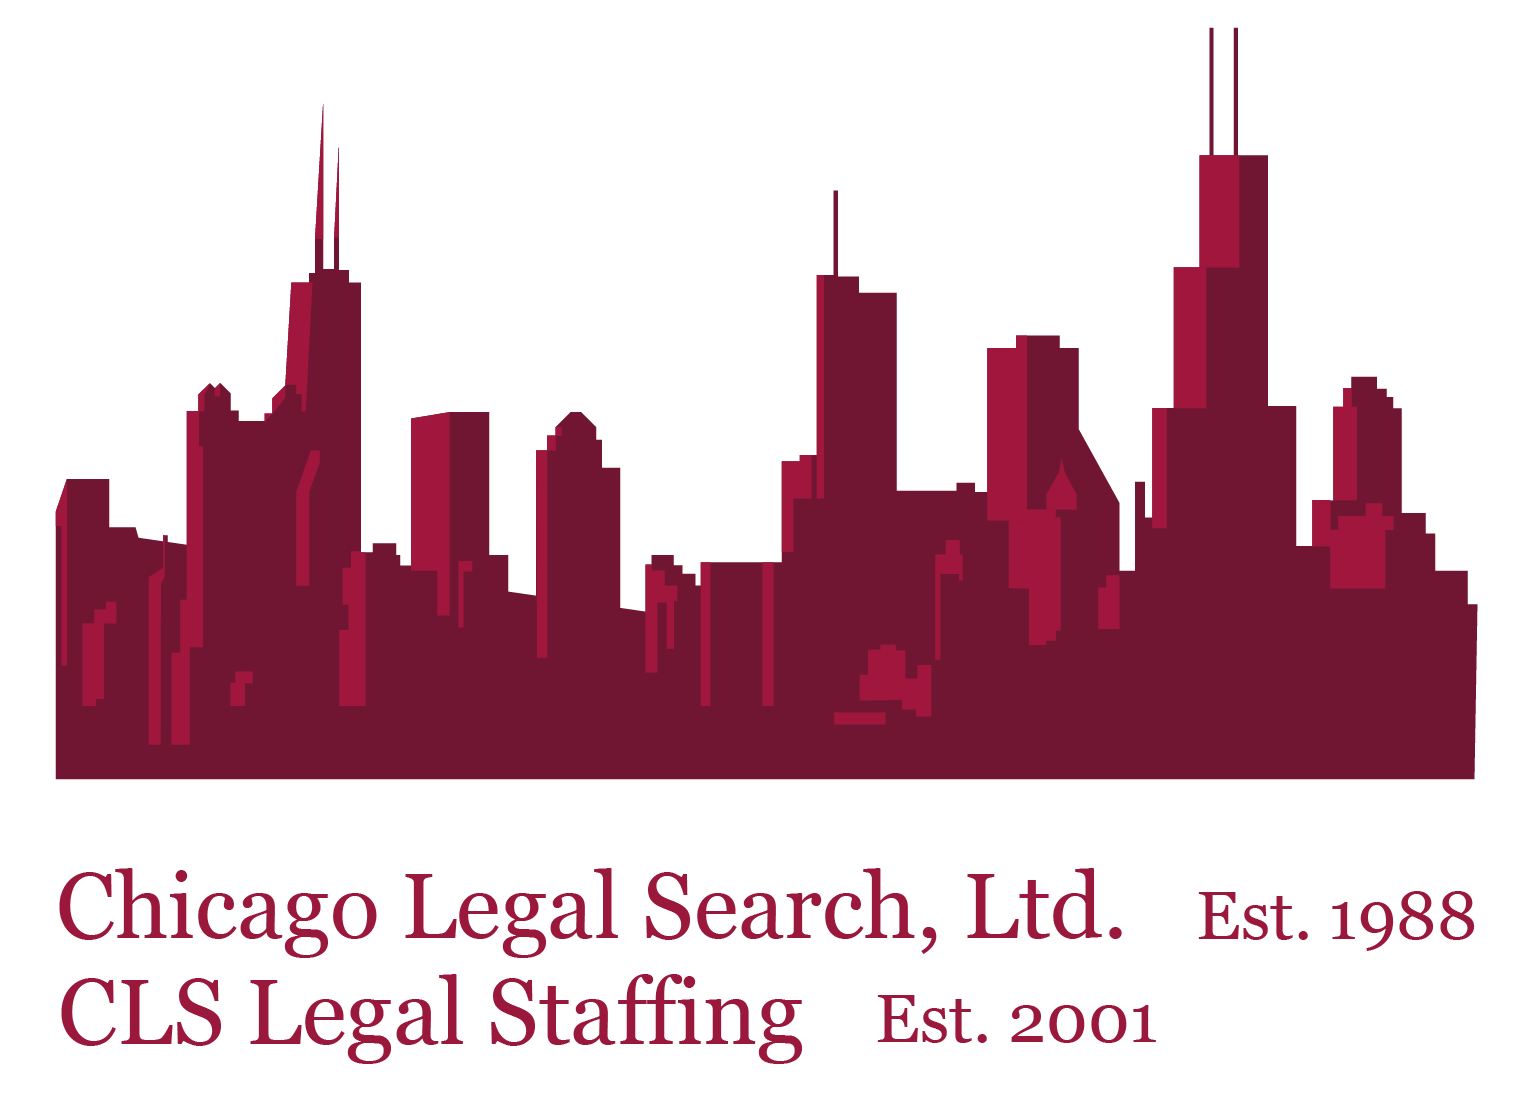 Chicago Legal